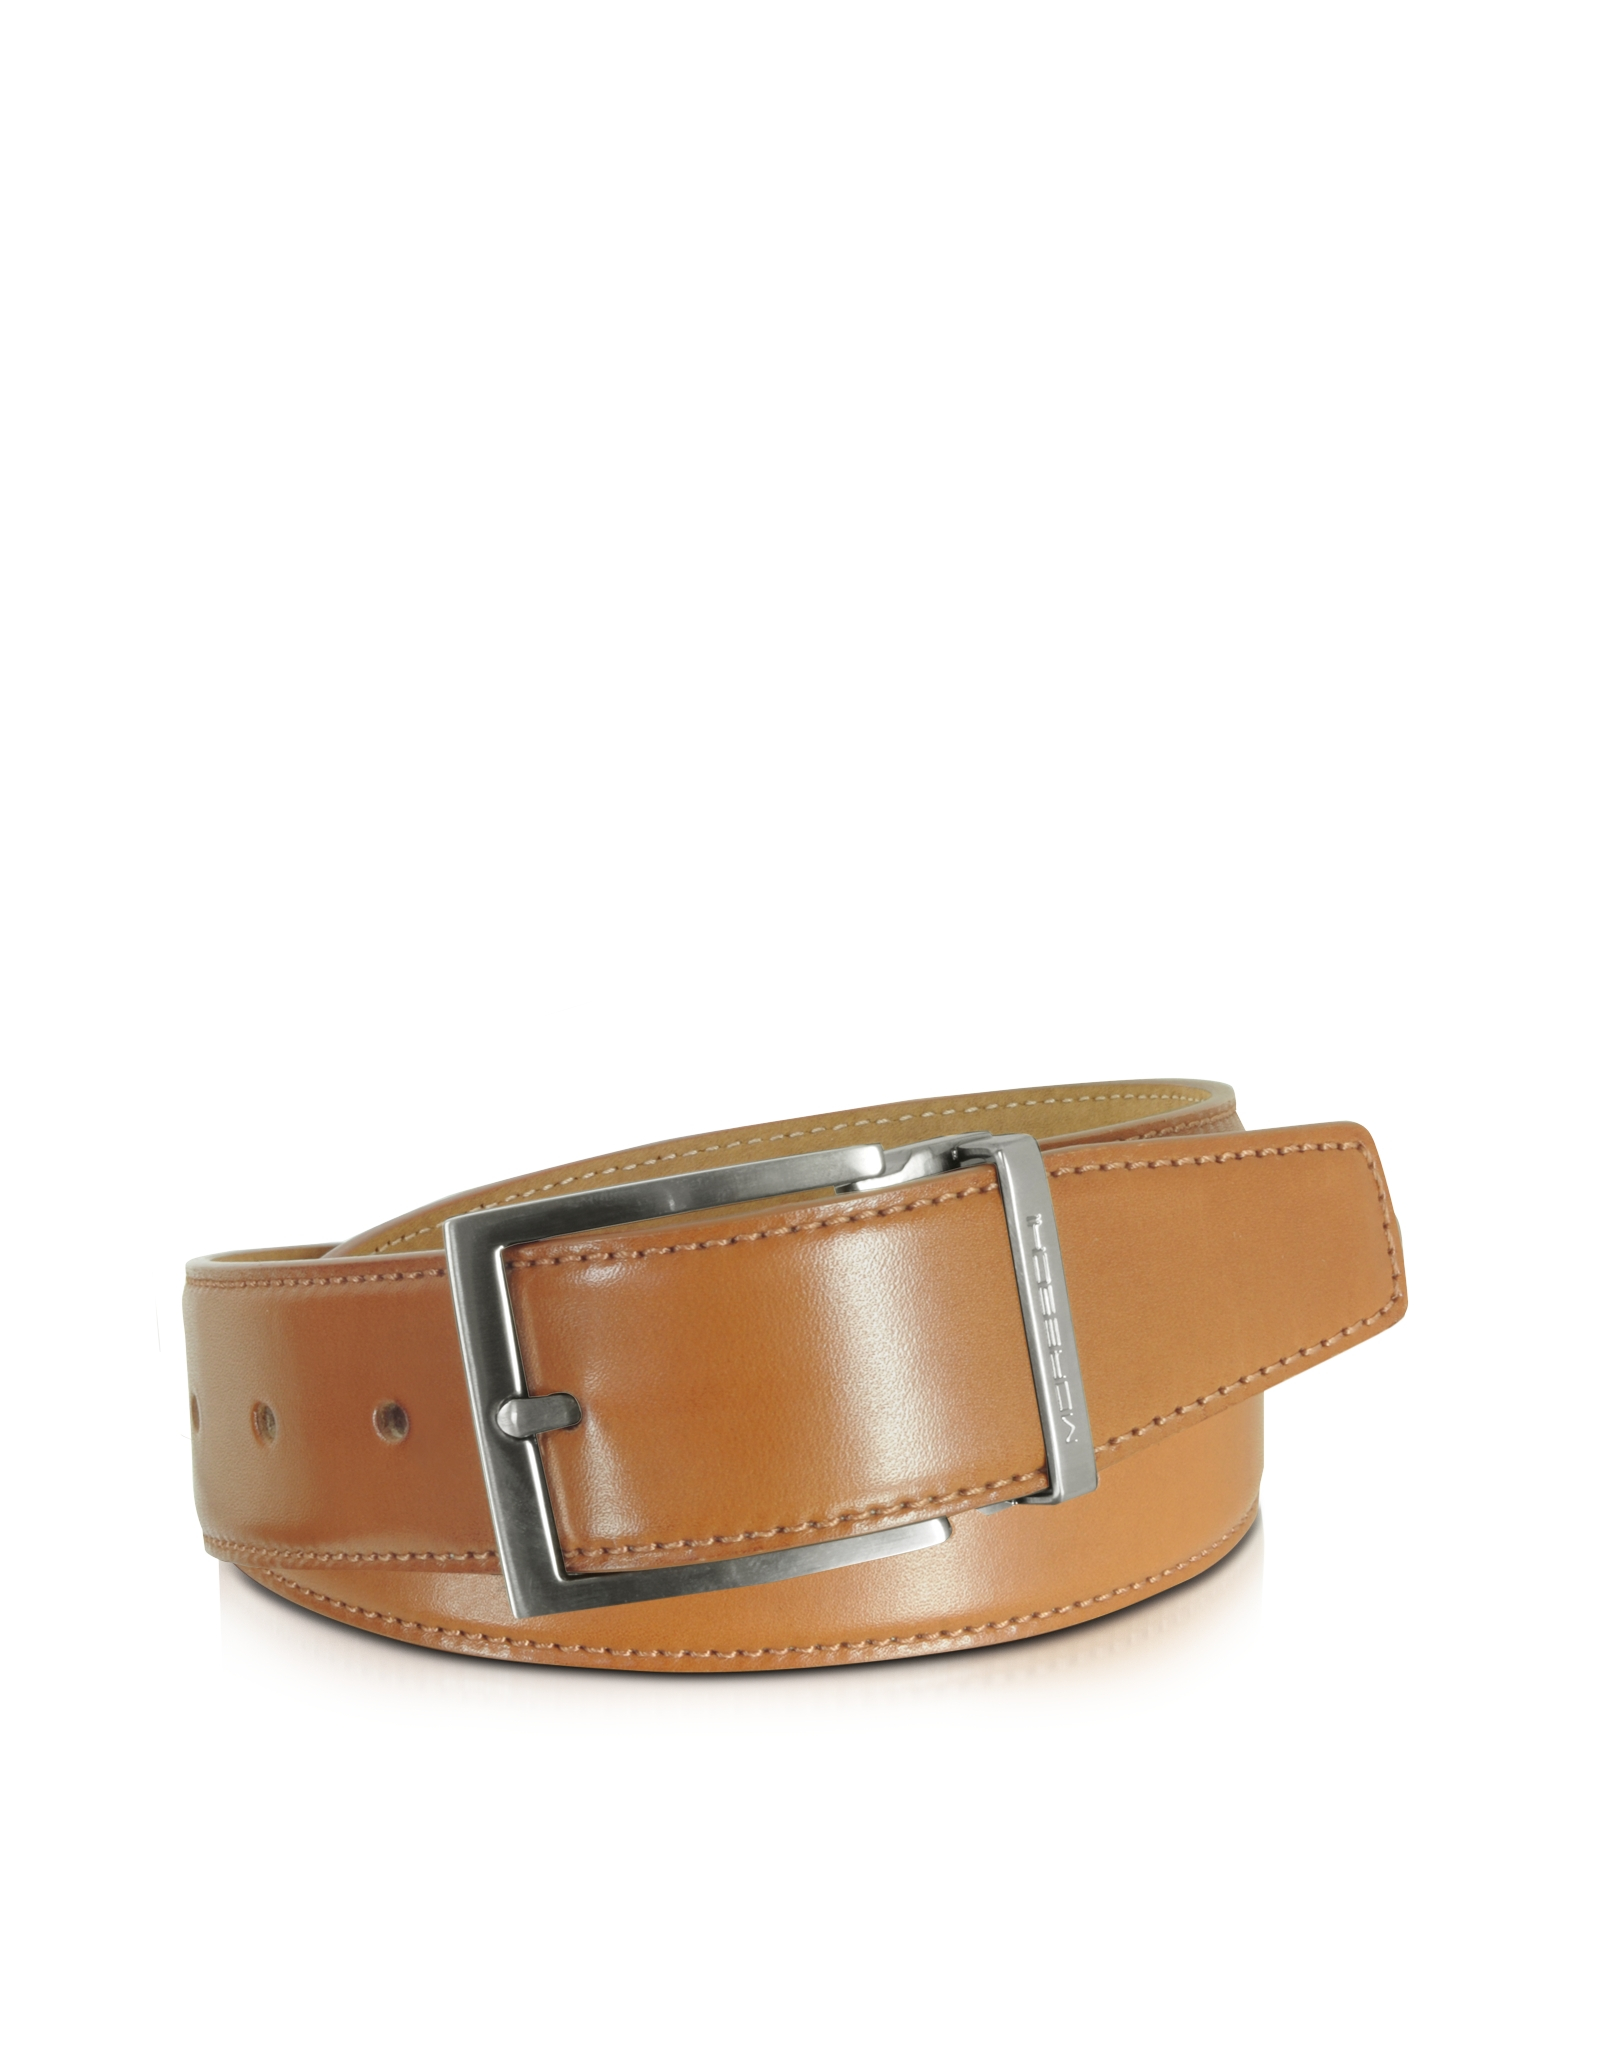 Free shipping on men's belts at s2w6s5q3to.gq Shop leather, reversible, printed & woven belts for men from the best brands. Totally free shipping & returns.